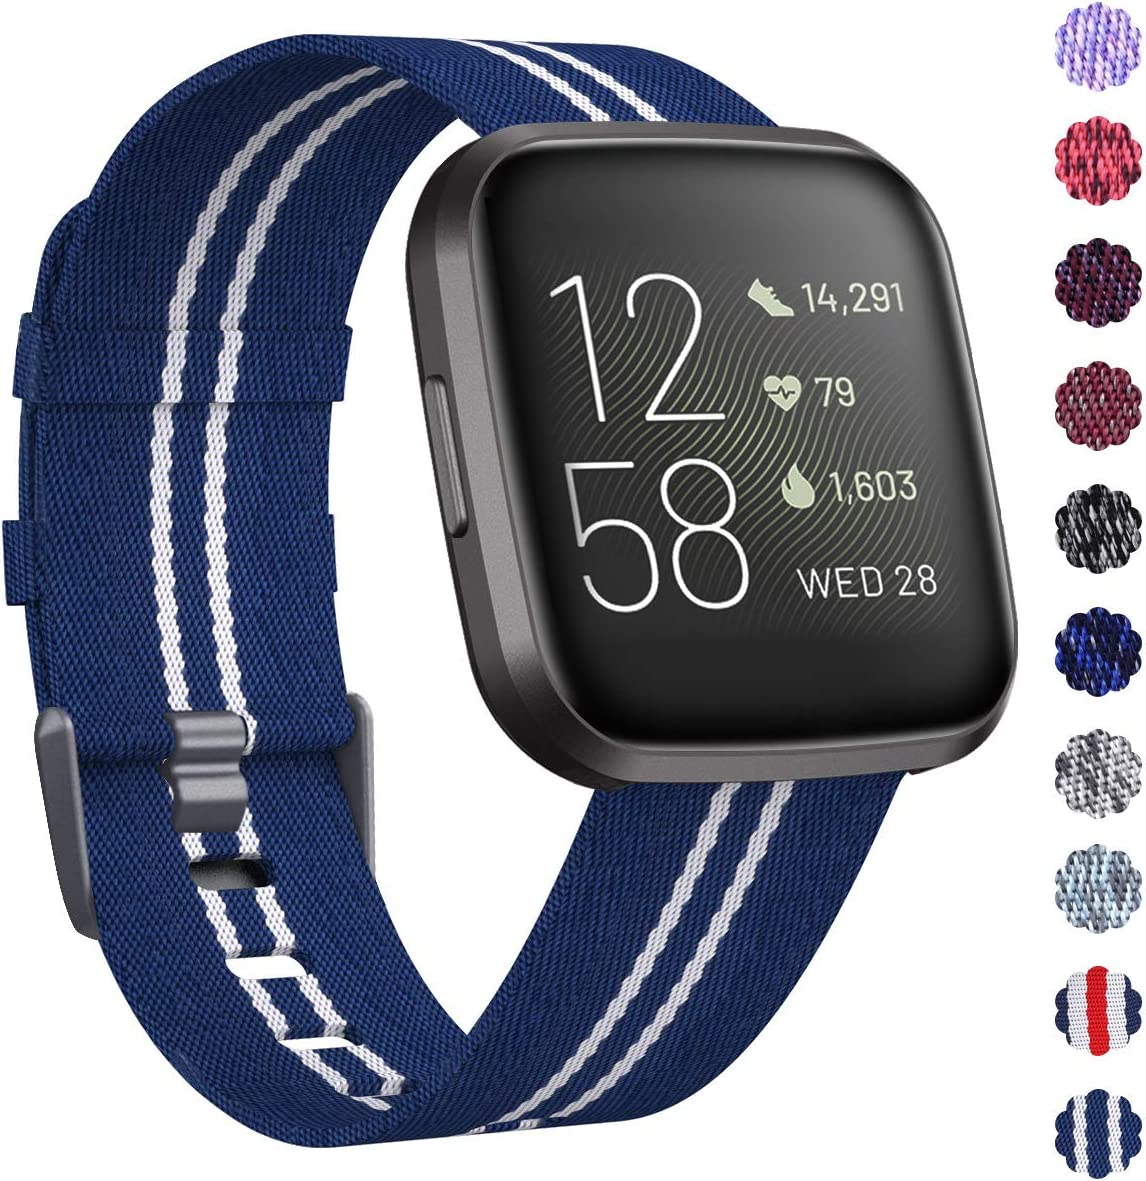 KIMILAR Woven Band Compatible with Fitbit Versa/Fitbit Versa 2/Fitbit Versa Lite Edition, Large Small Woven Fabric Breathable Men Women Versa ...